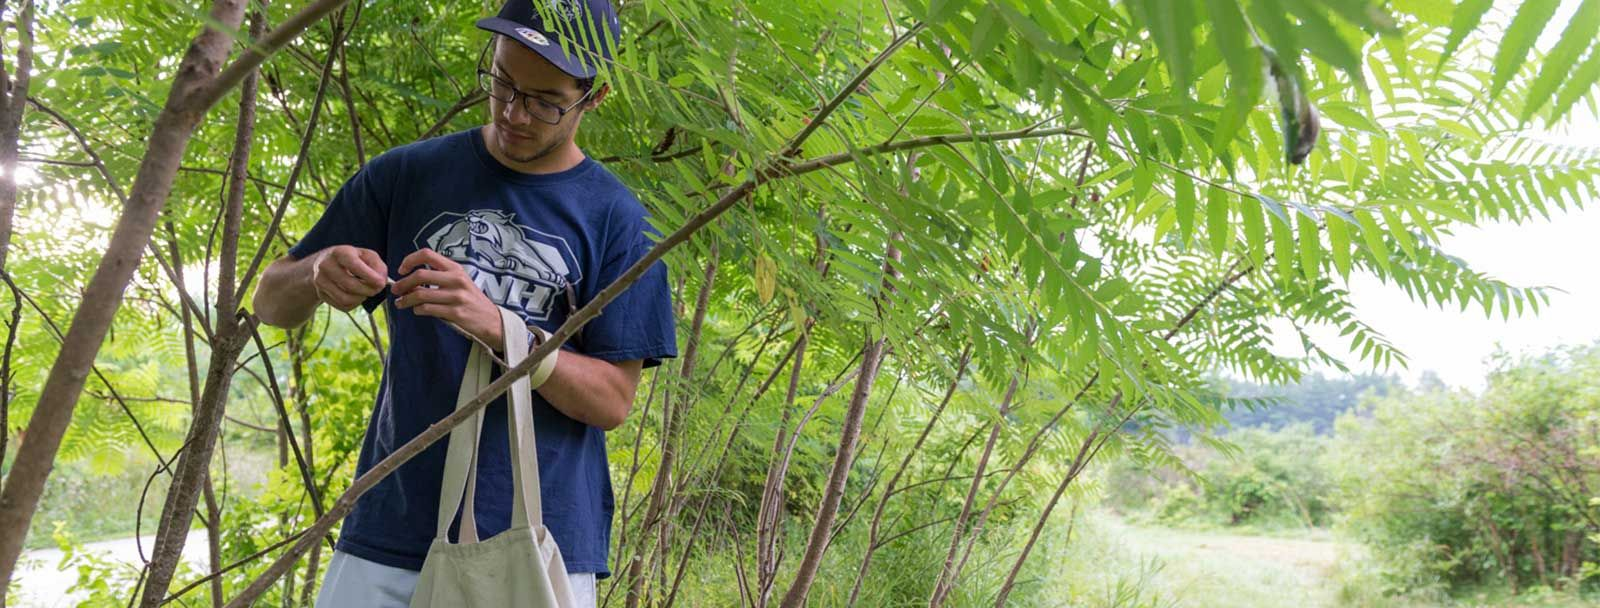 UNH pre-med major Sean Lombard harvests sumac stems for his research study